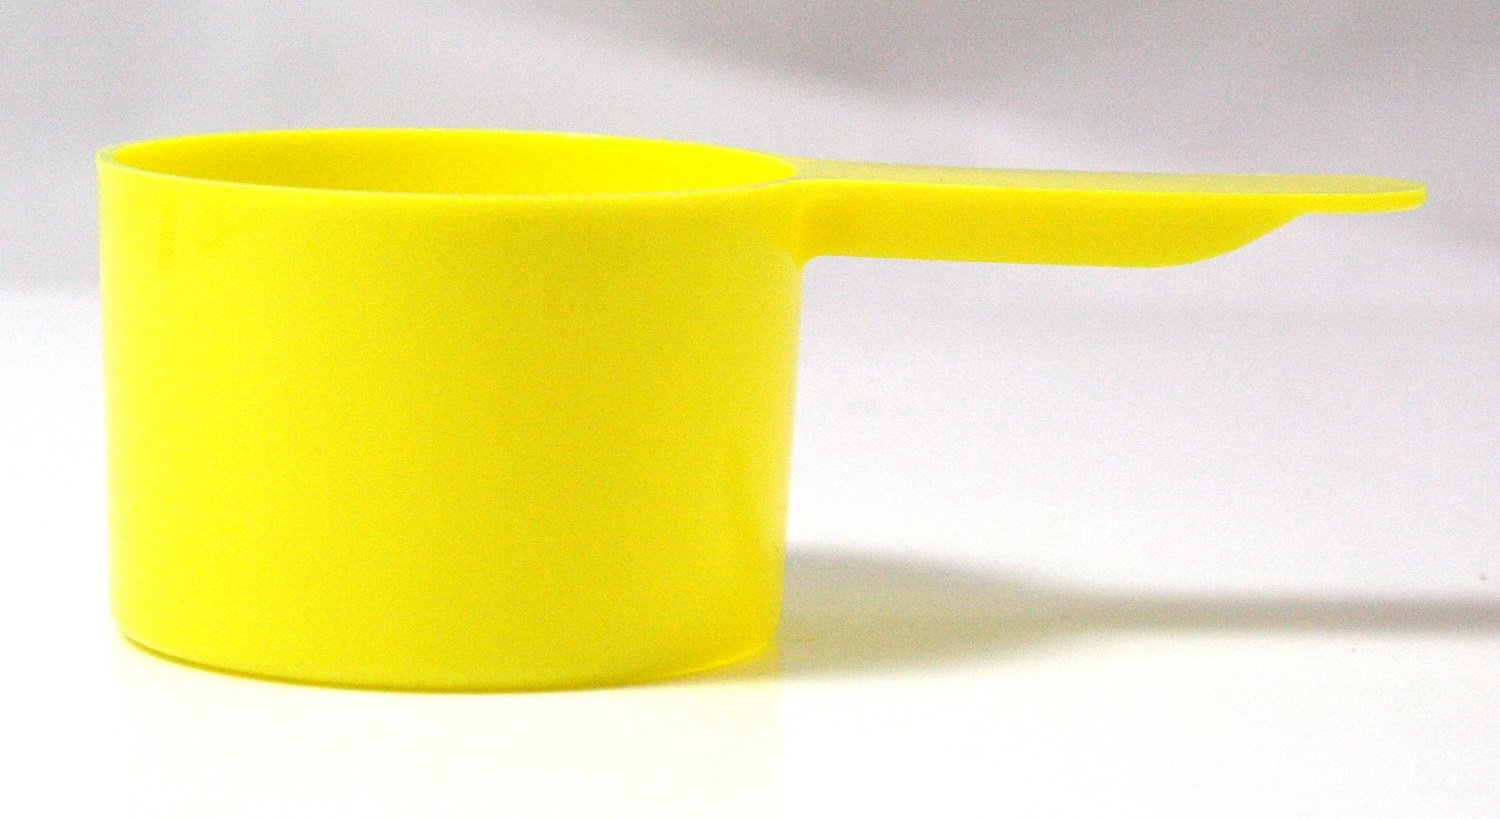 1 Ounce (29.6mL) Yellow Plastic Measure, Case of 1100 Measuring Scoops by OnlineScienceMall